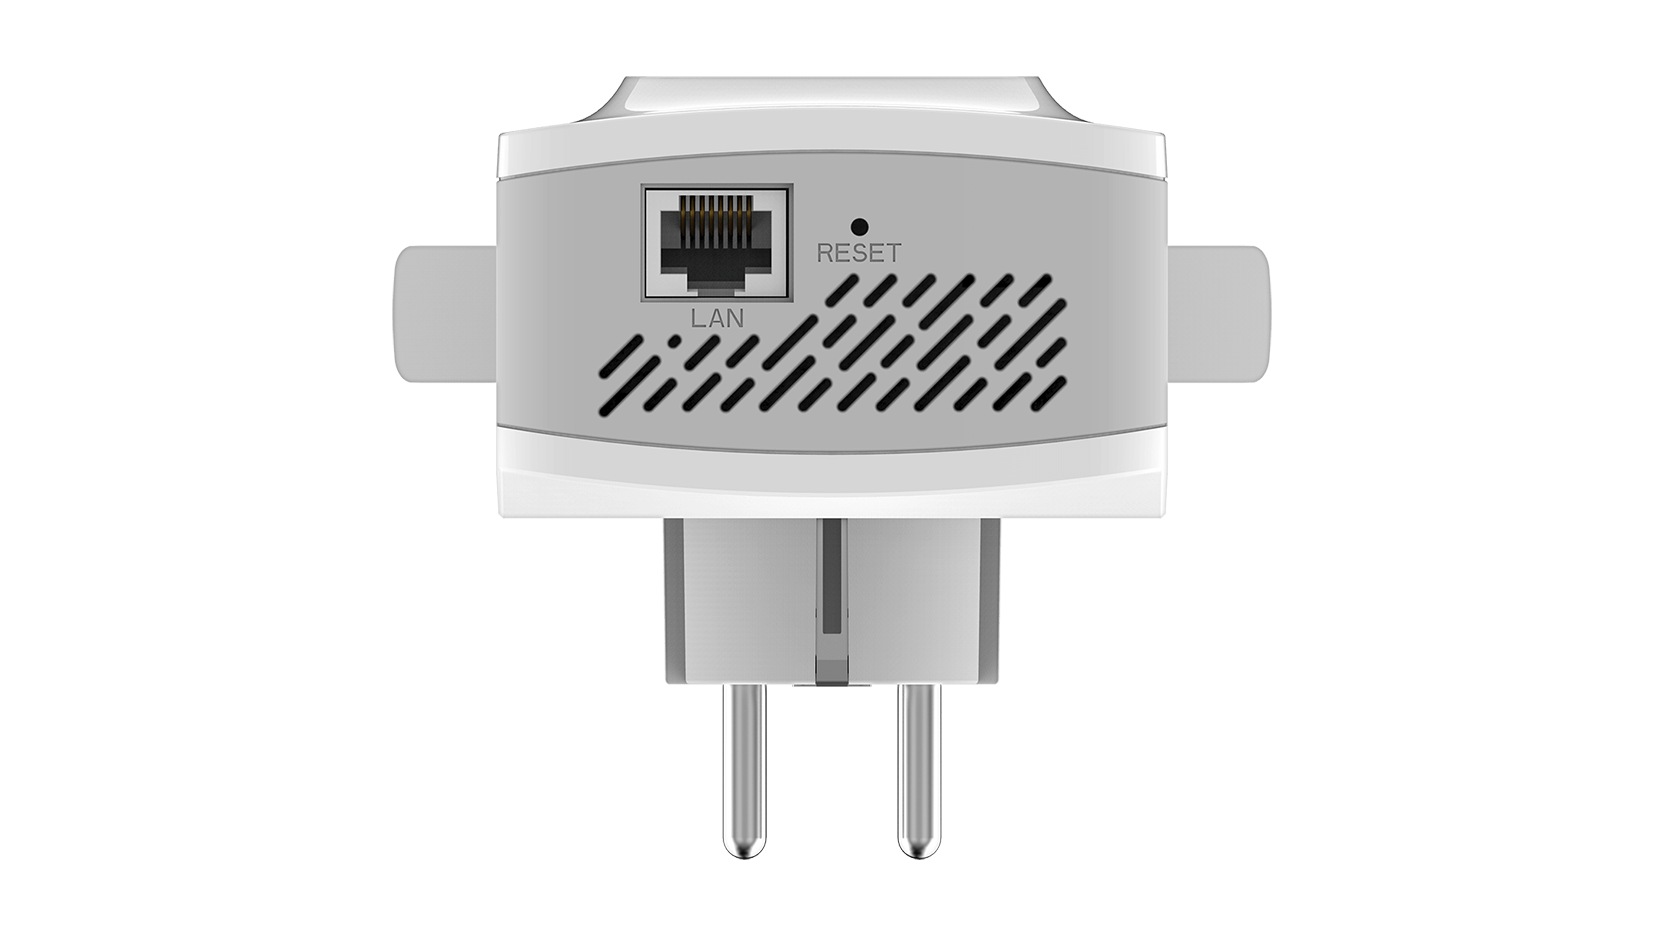 DAP-1635 AC1200 Wi-Fi Range Extender with Power Passthrough